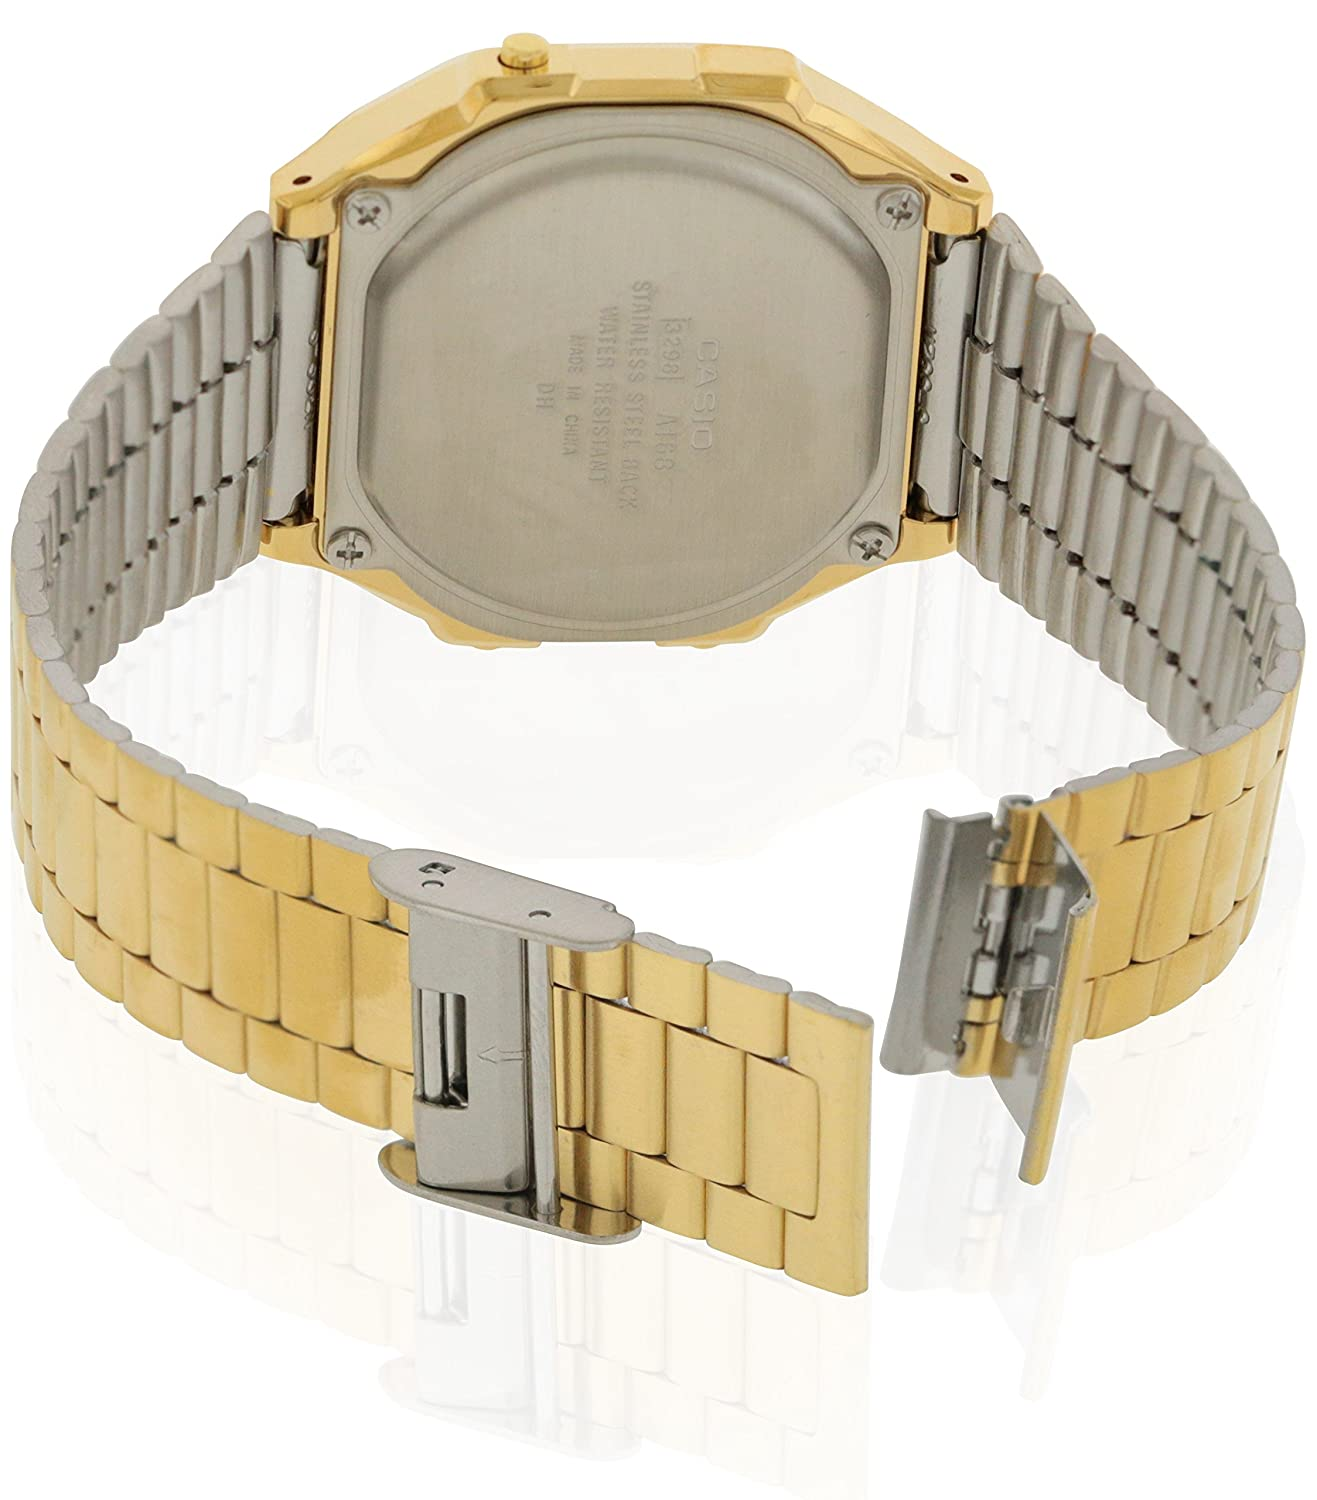 27d70da8f06 Amazon.com  Casio A168WG-9 Men s Vintage Gold Metal Band Illuminator  Chronograph Alarm Watch  Watches